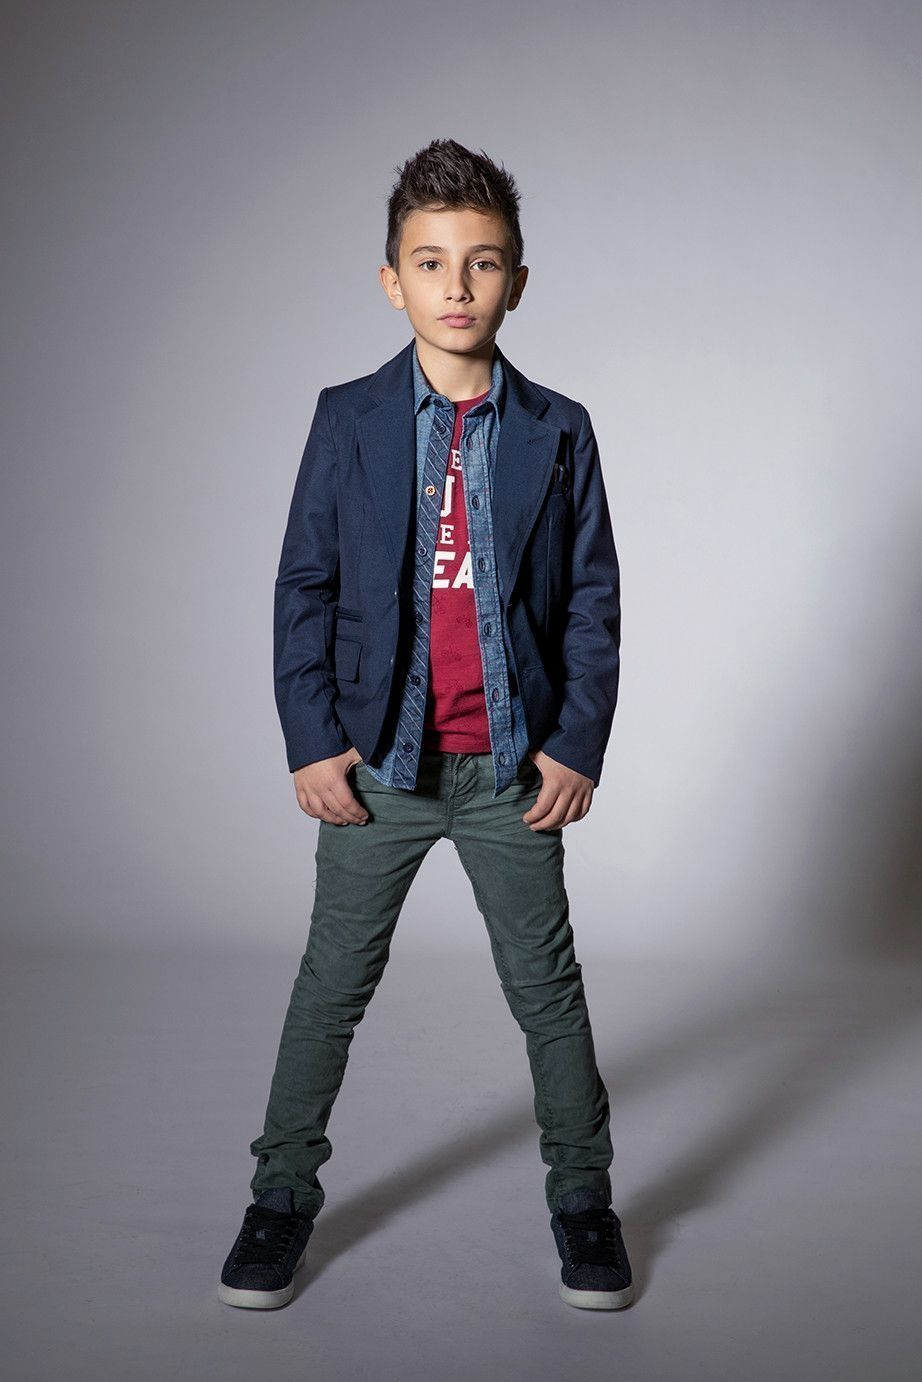 93585b3cff7d 52 Little Boy Outfits To Make Your Boy Look Fashionable